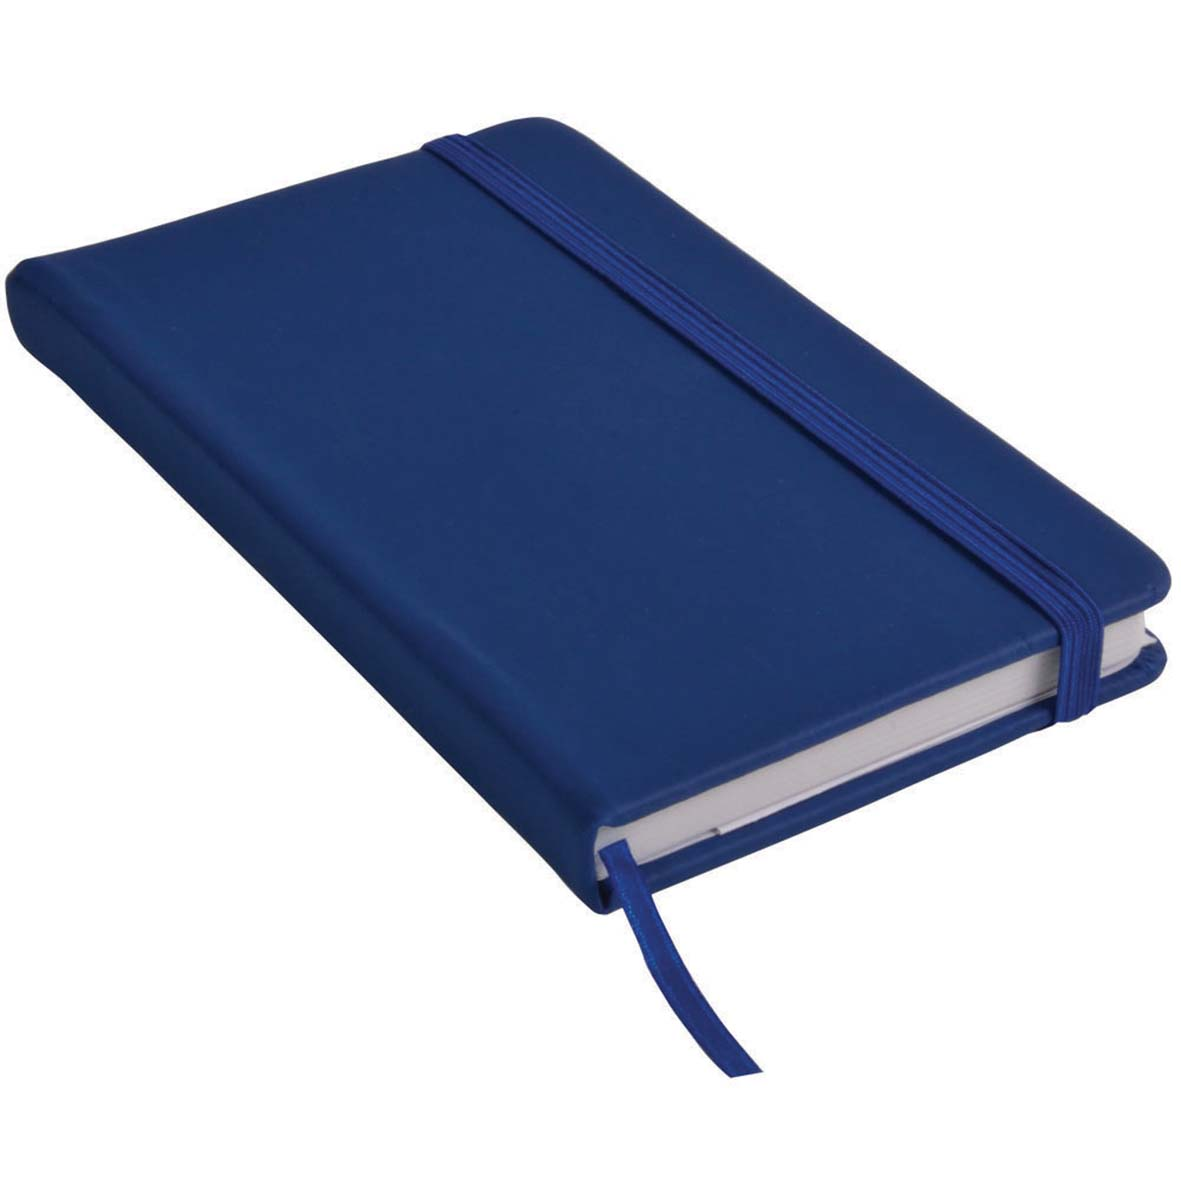 Note book with PU cover and elastic band for closing -  Royal Blue sip-1441410